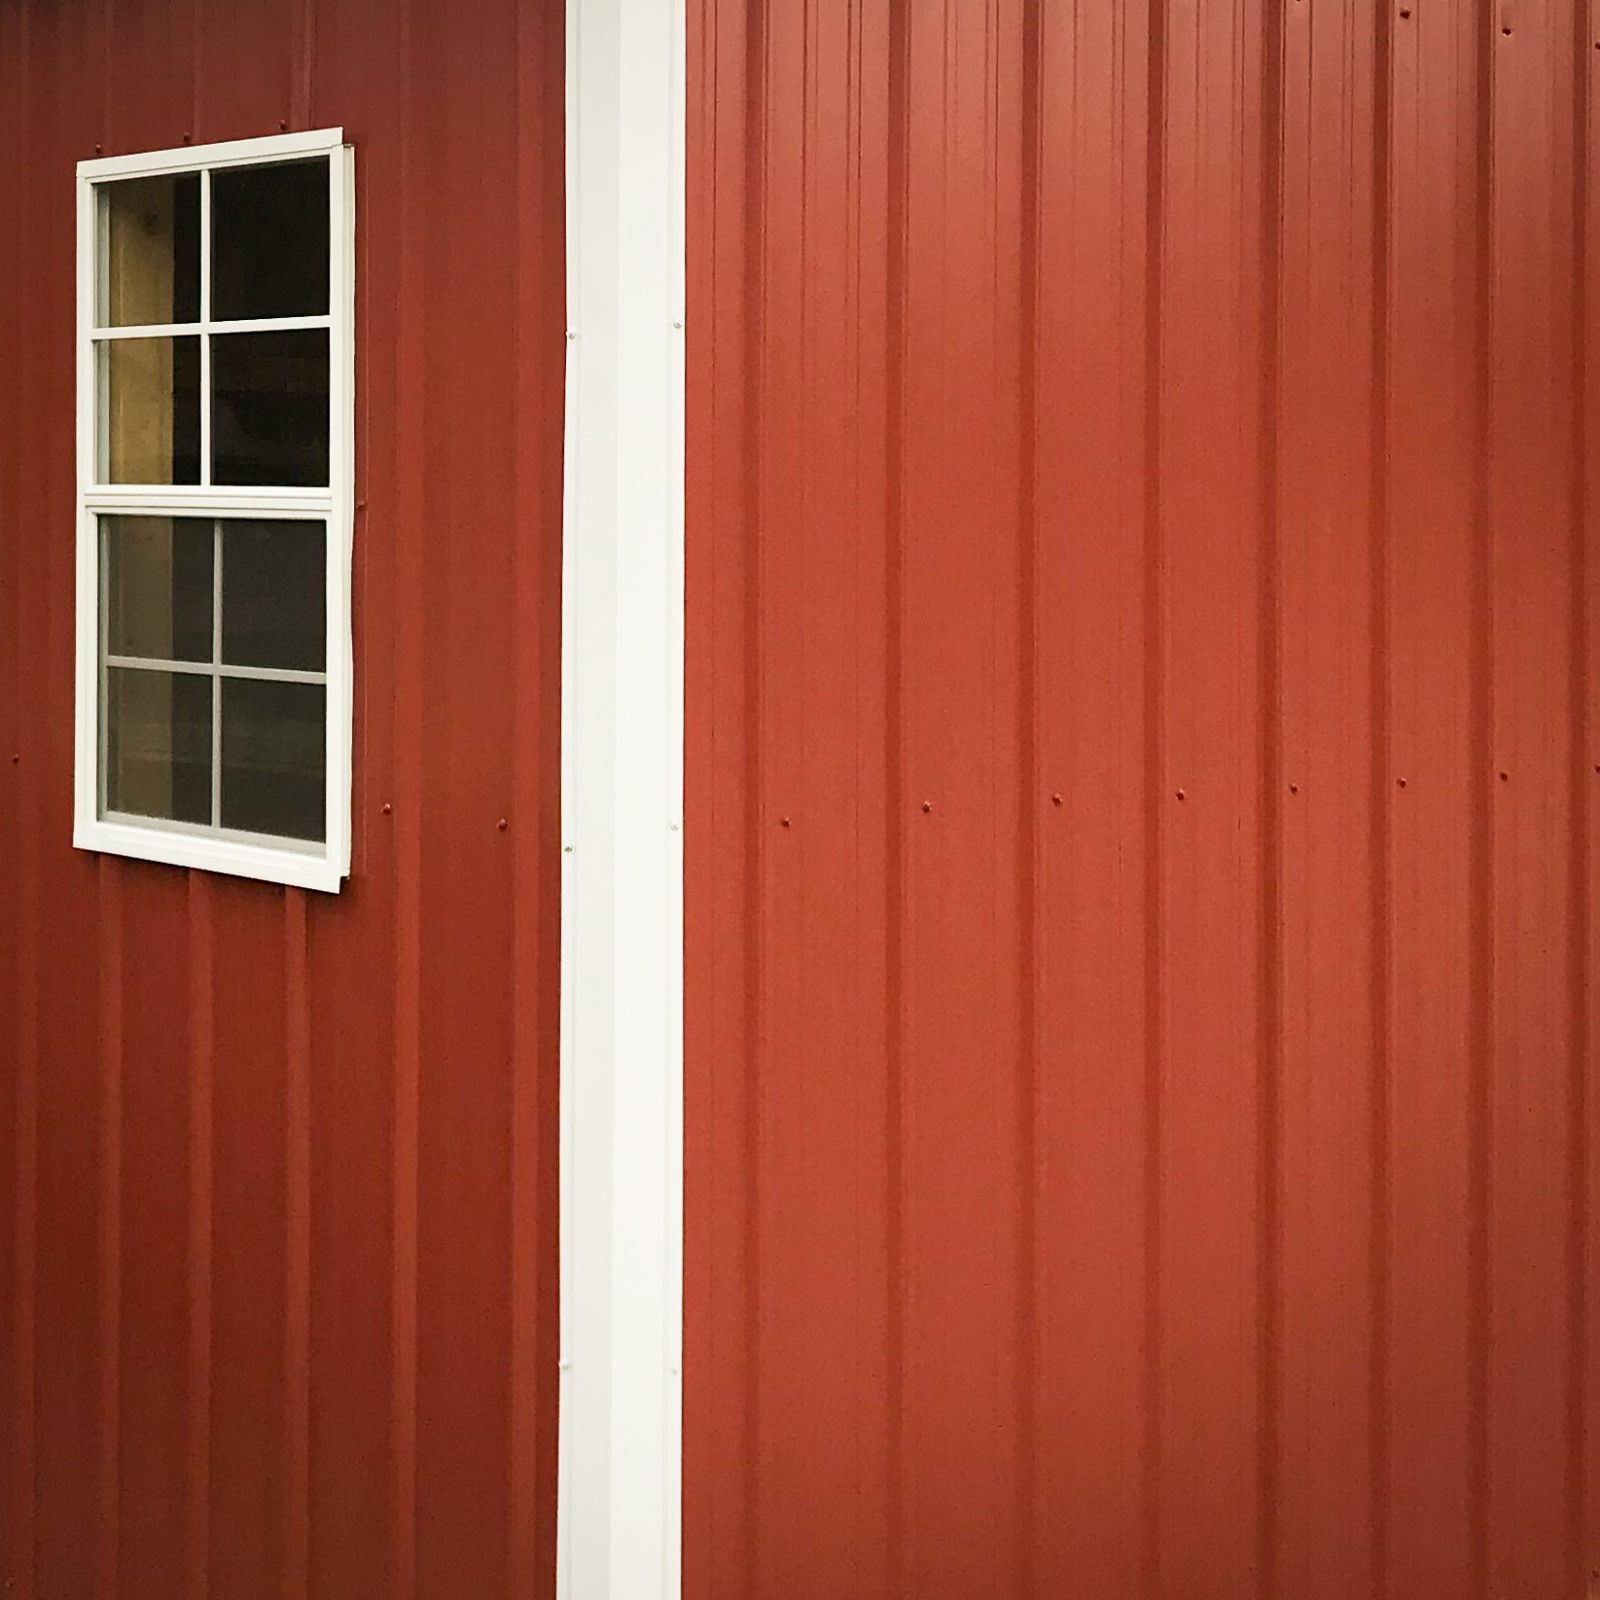 Log siding for custom sheds in KY and TN